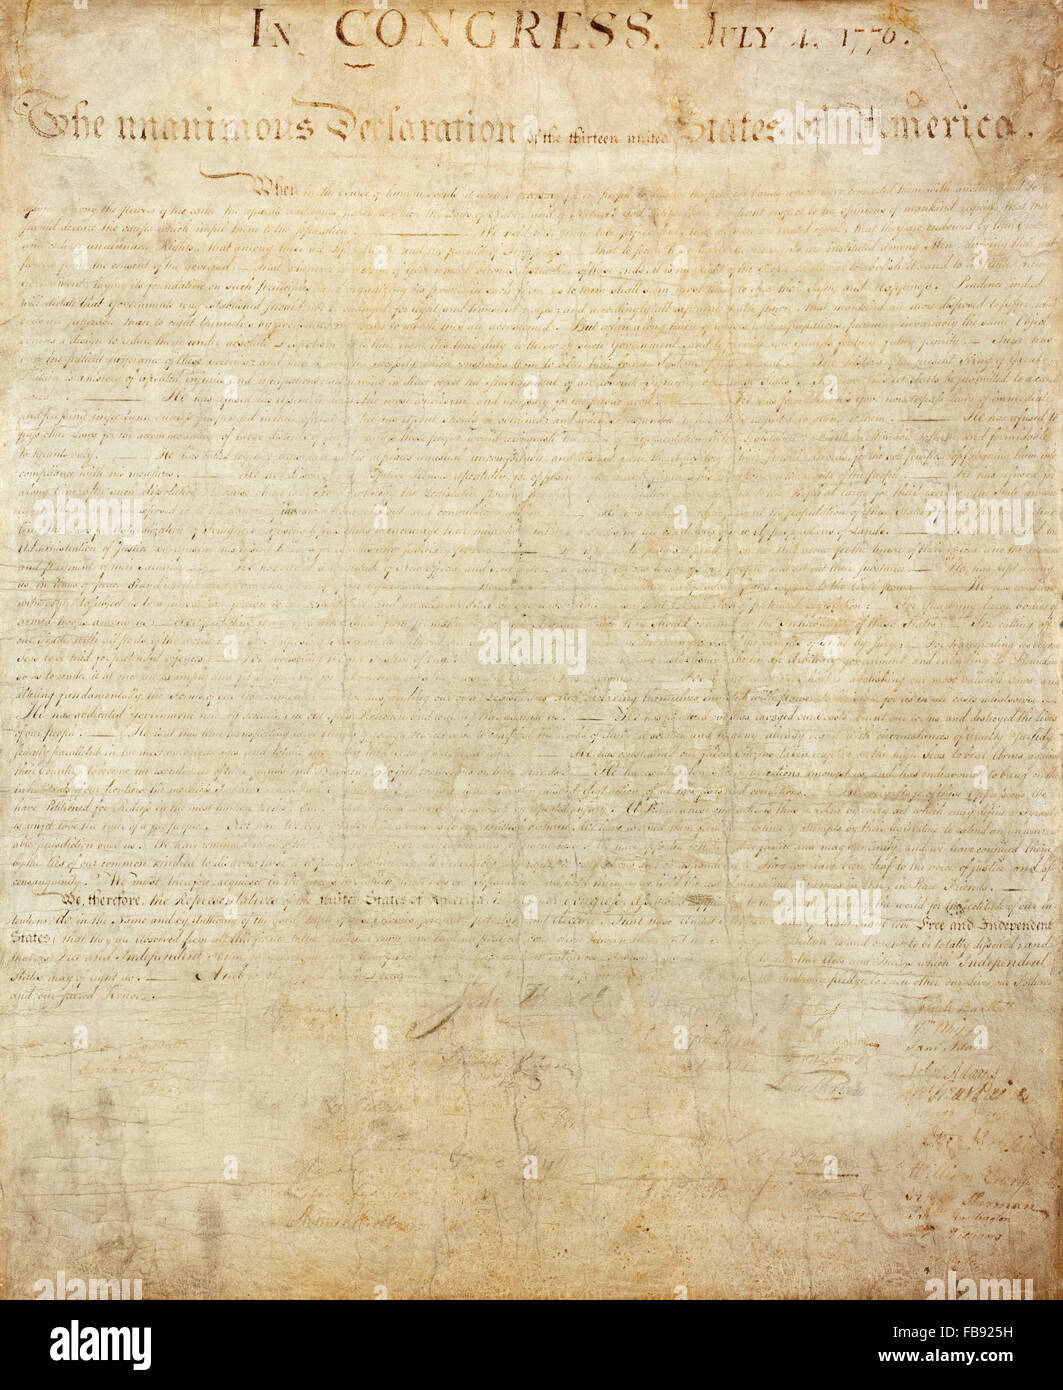 Declaration of Independence. The badly faded original engrossed copy of the US Declaration of Independence, held - Stock Image